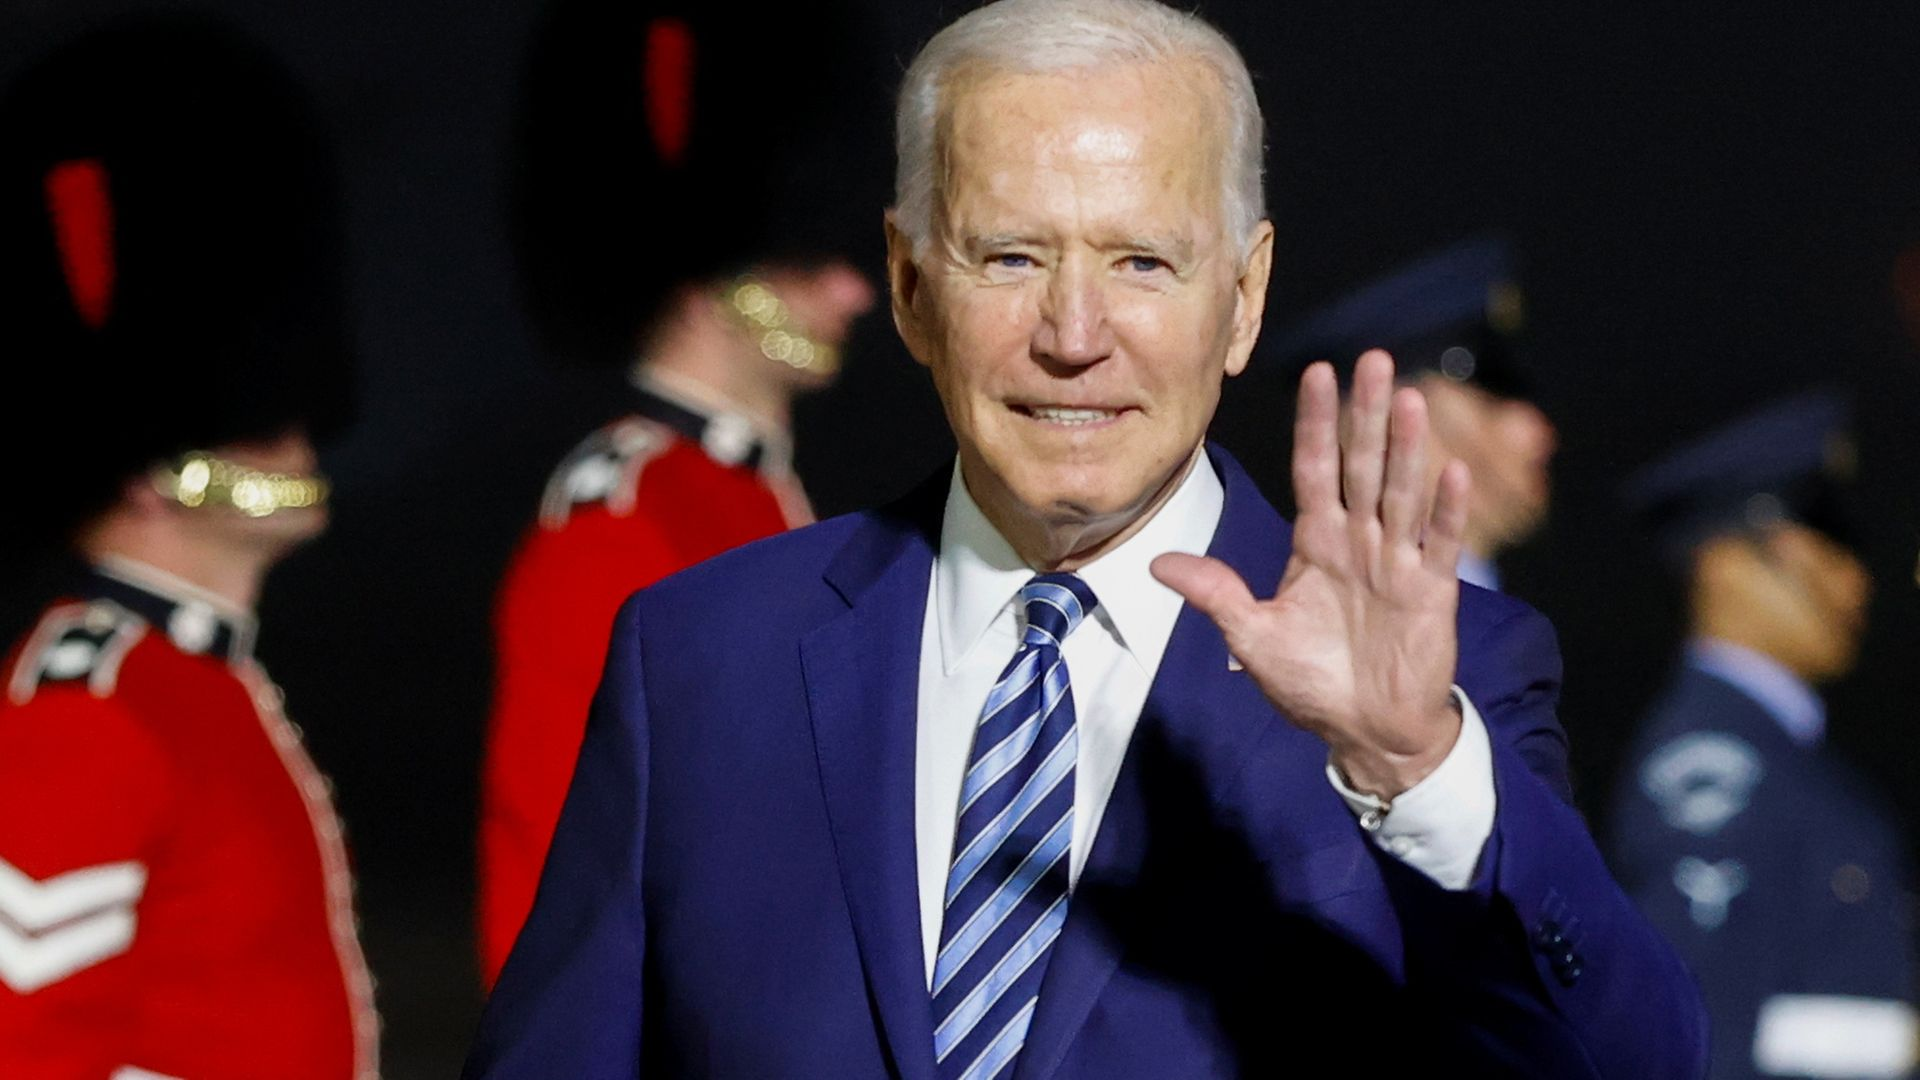 US President Joe Biden waves on arrival on Air Force One at Cornwall Airport Newquay ahead of the G7 summit - Credit: PA